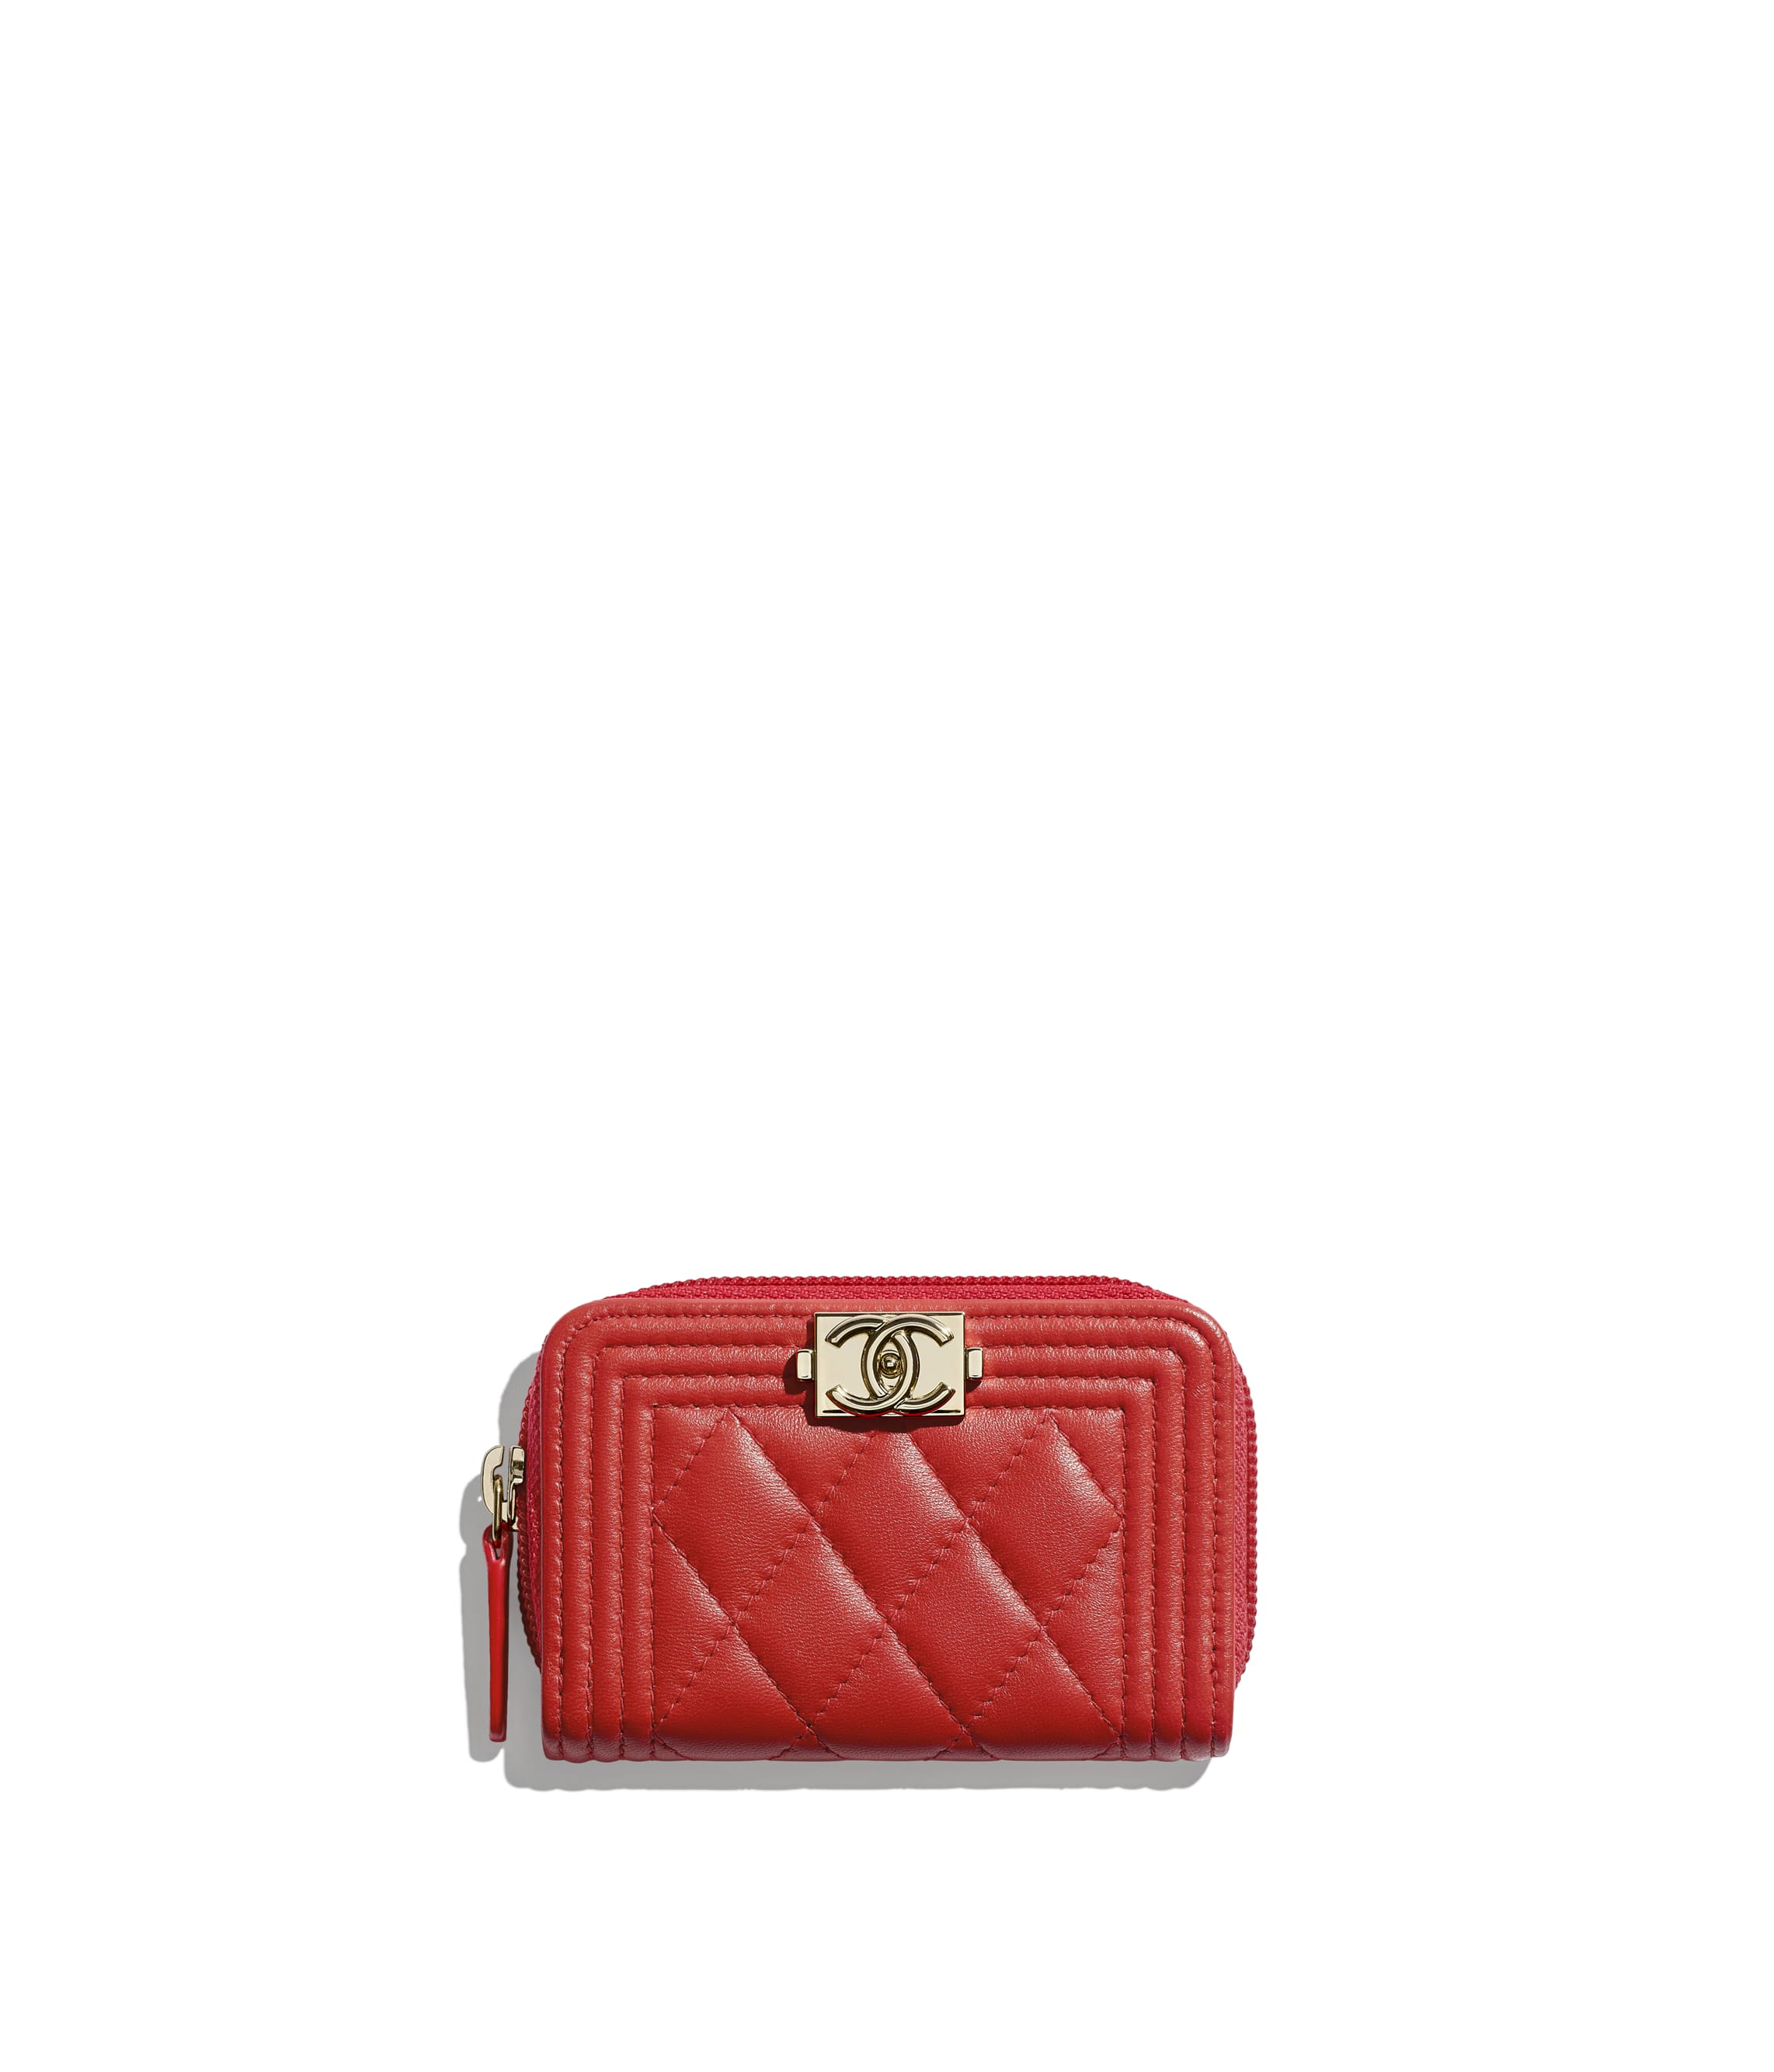 1d25d0cb76e761 Coin Purses - Small Leather Goods - CHANEL